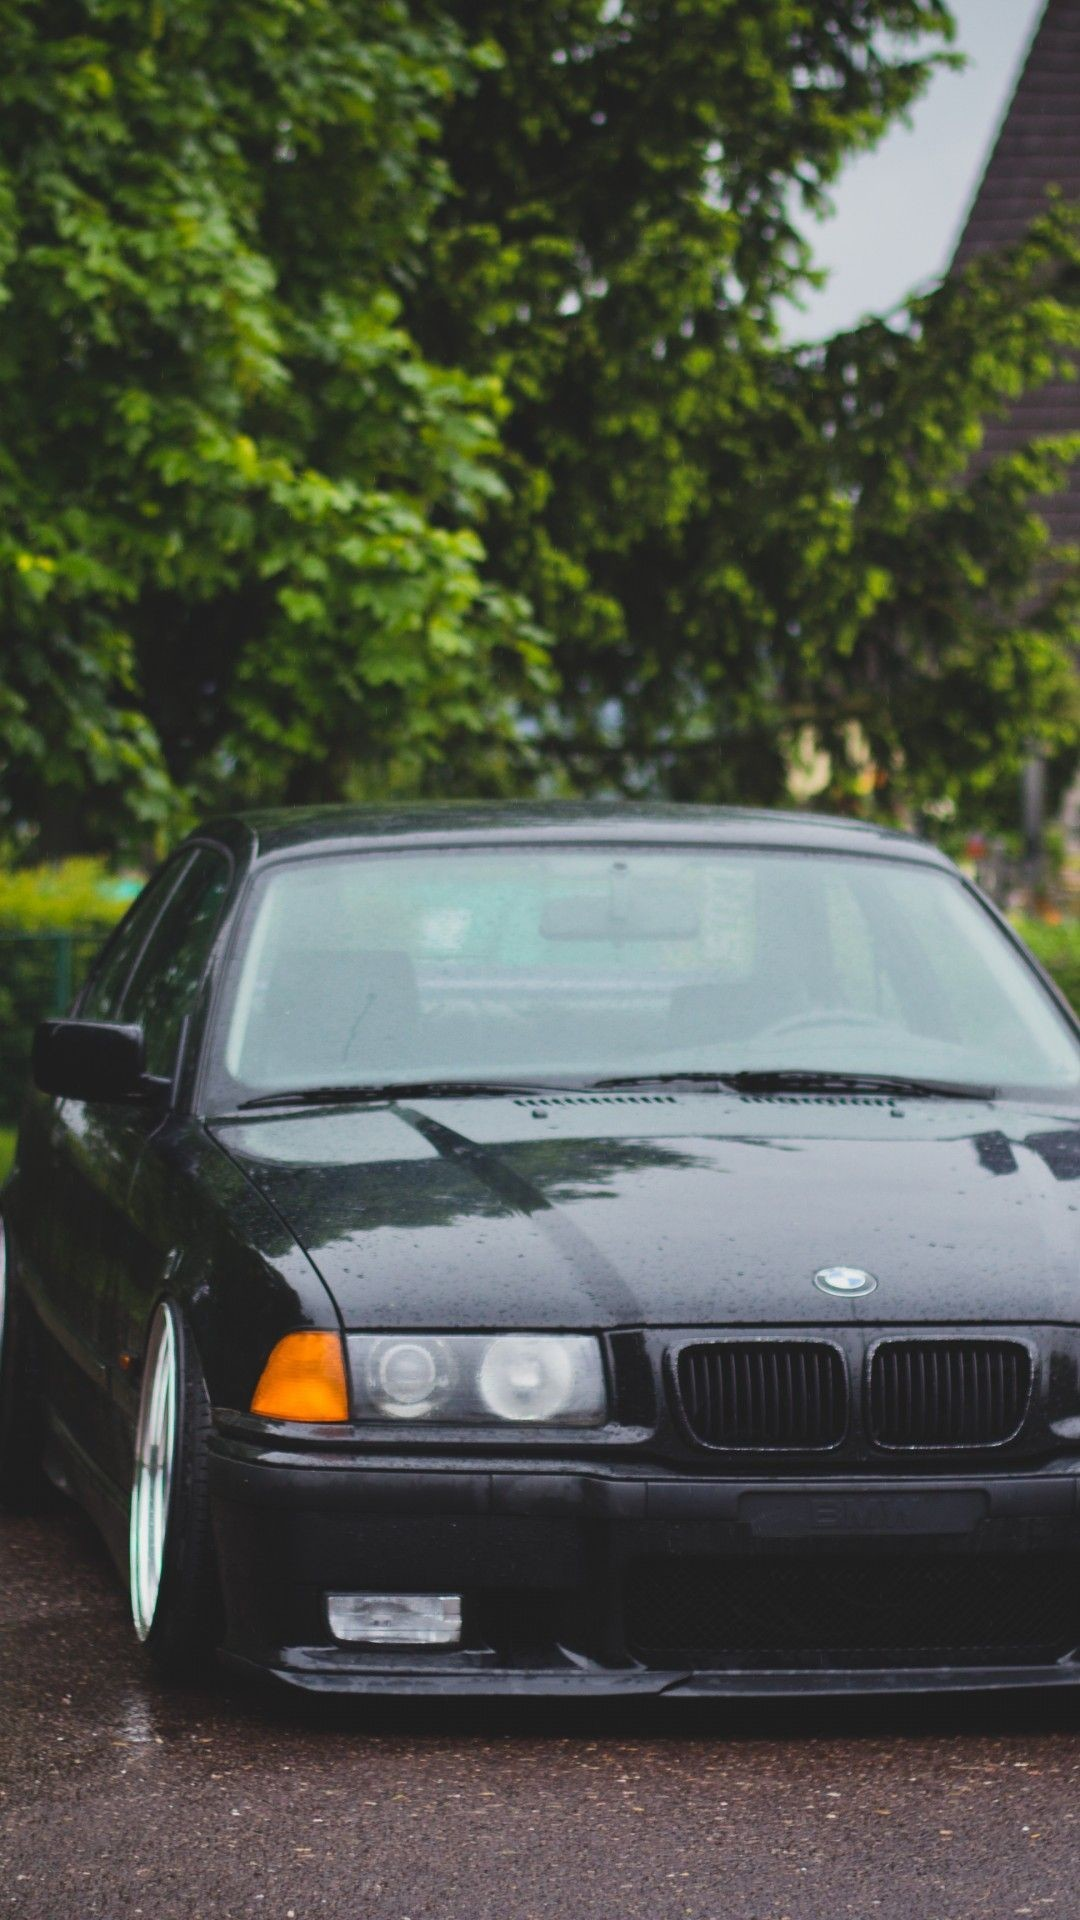 E36 M3 Wallpaper ·① WallpaperTag